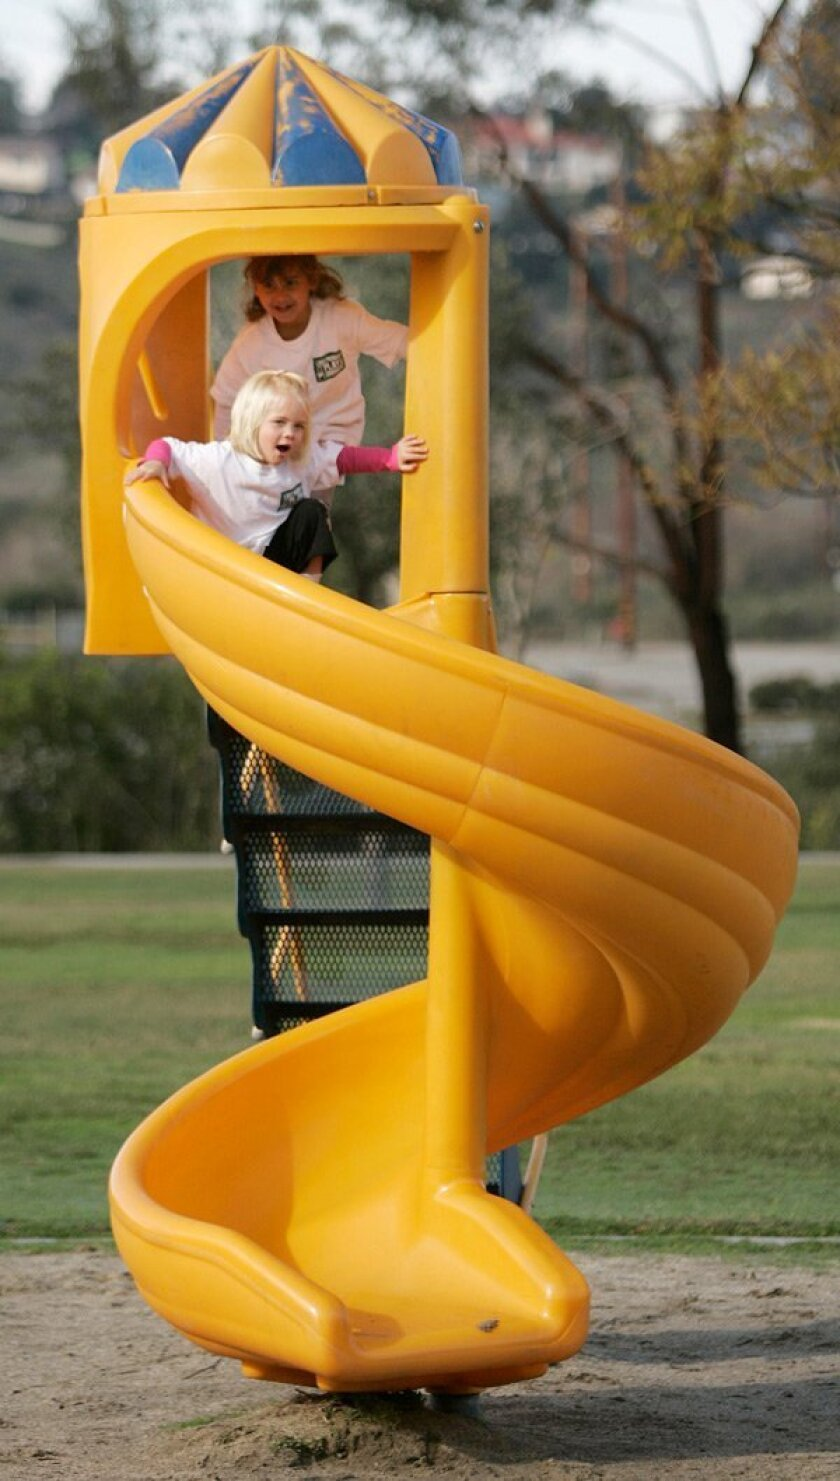 Norah Dahlkamp (front) and Ella Shabestari, both 3, rode the spiral slide at Lake Murray Community Park.